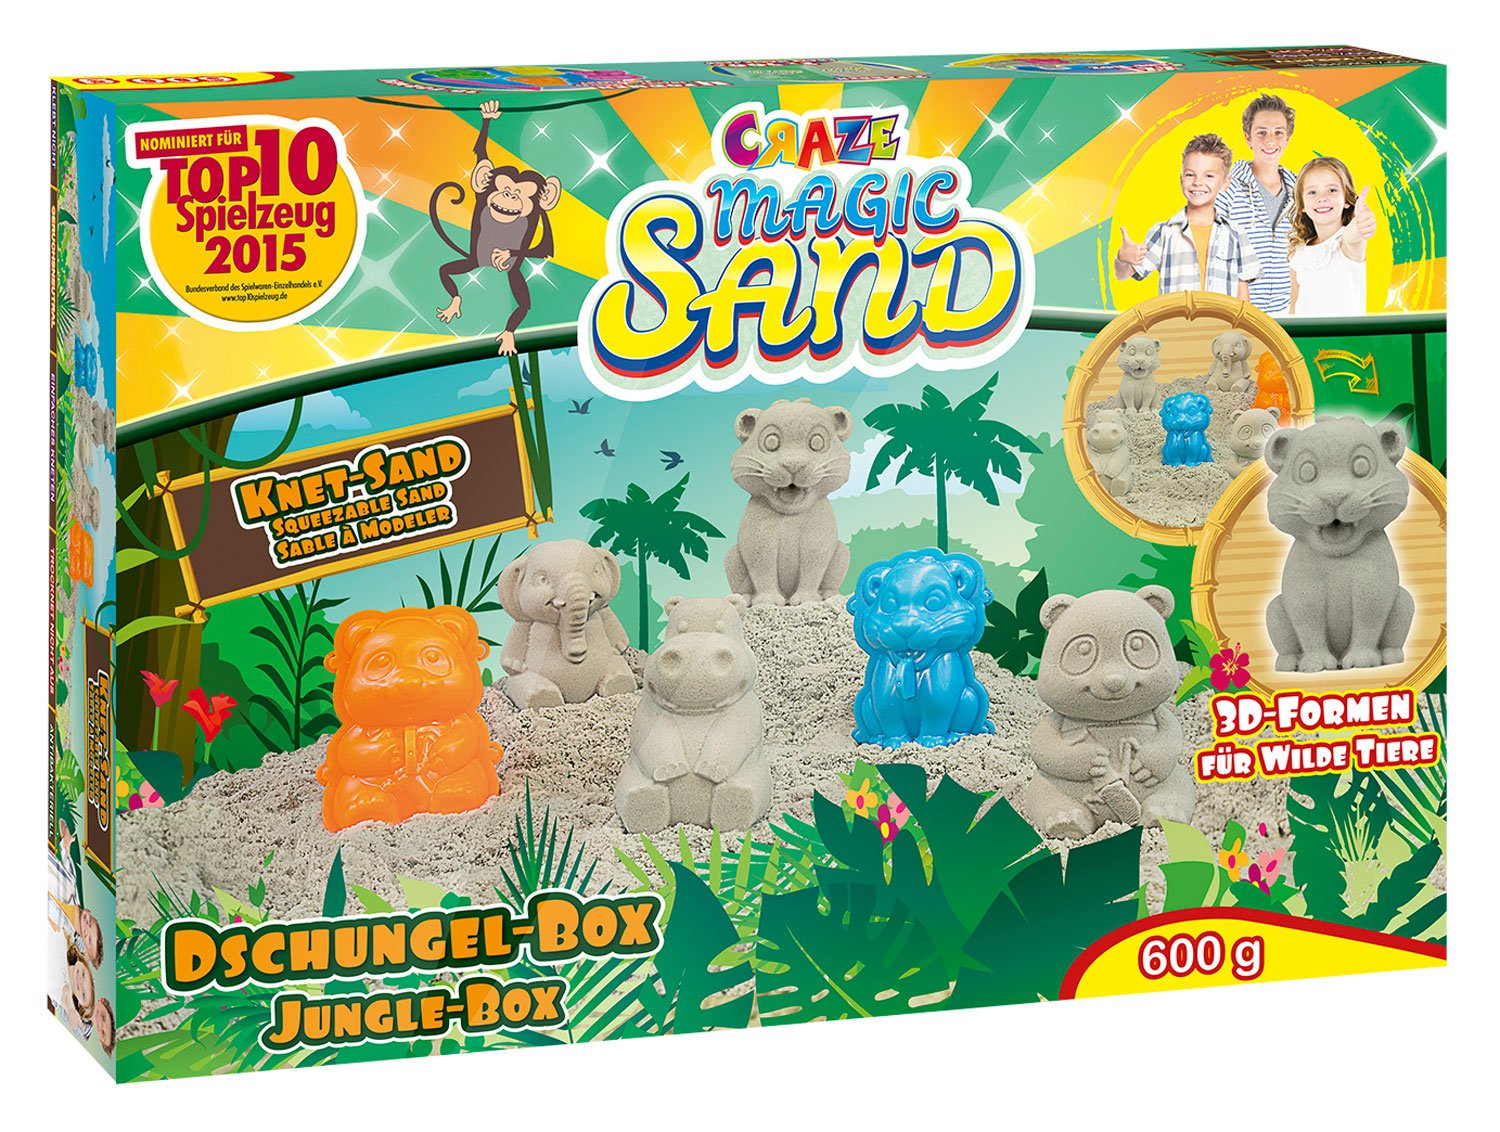 Craze - 53189 - Magic Sand - Les Animaux De La Jungle 600 Grammes De Sable Magique - Craze_53189